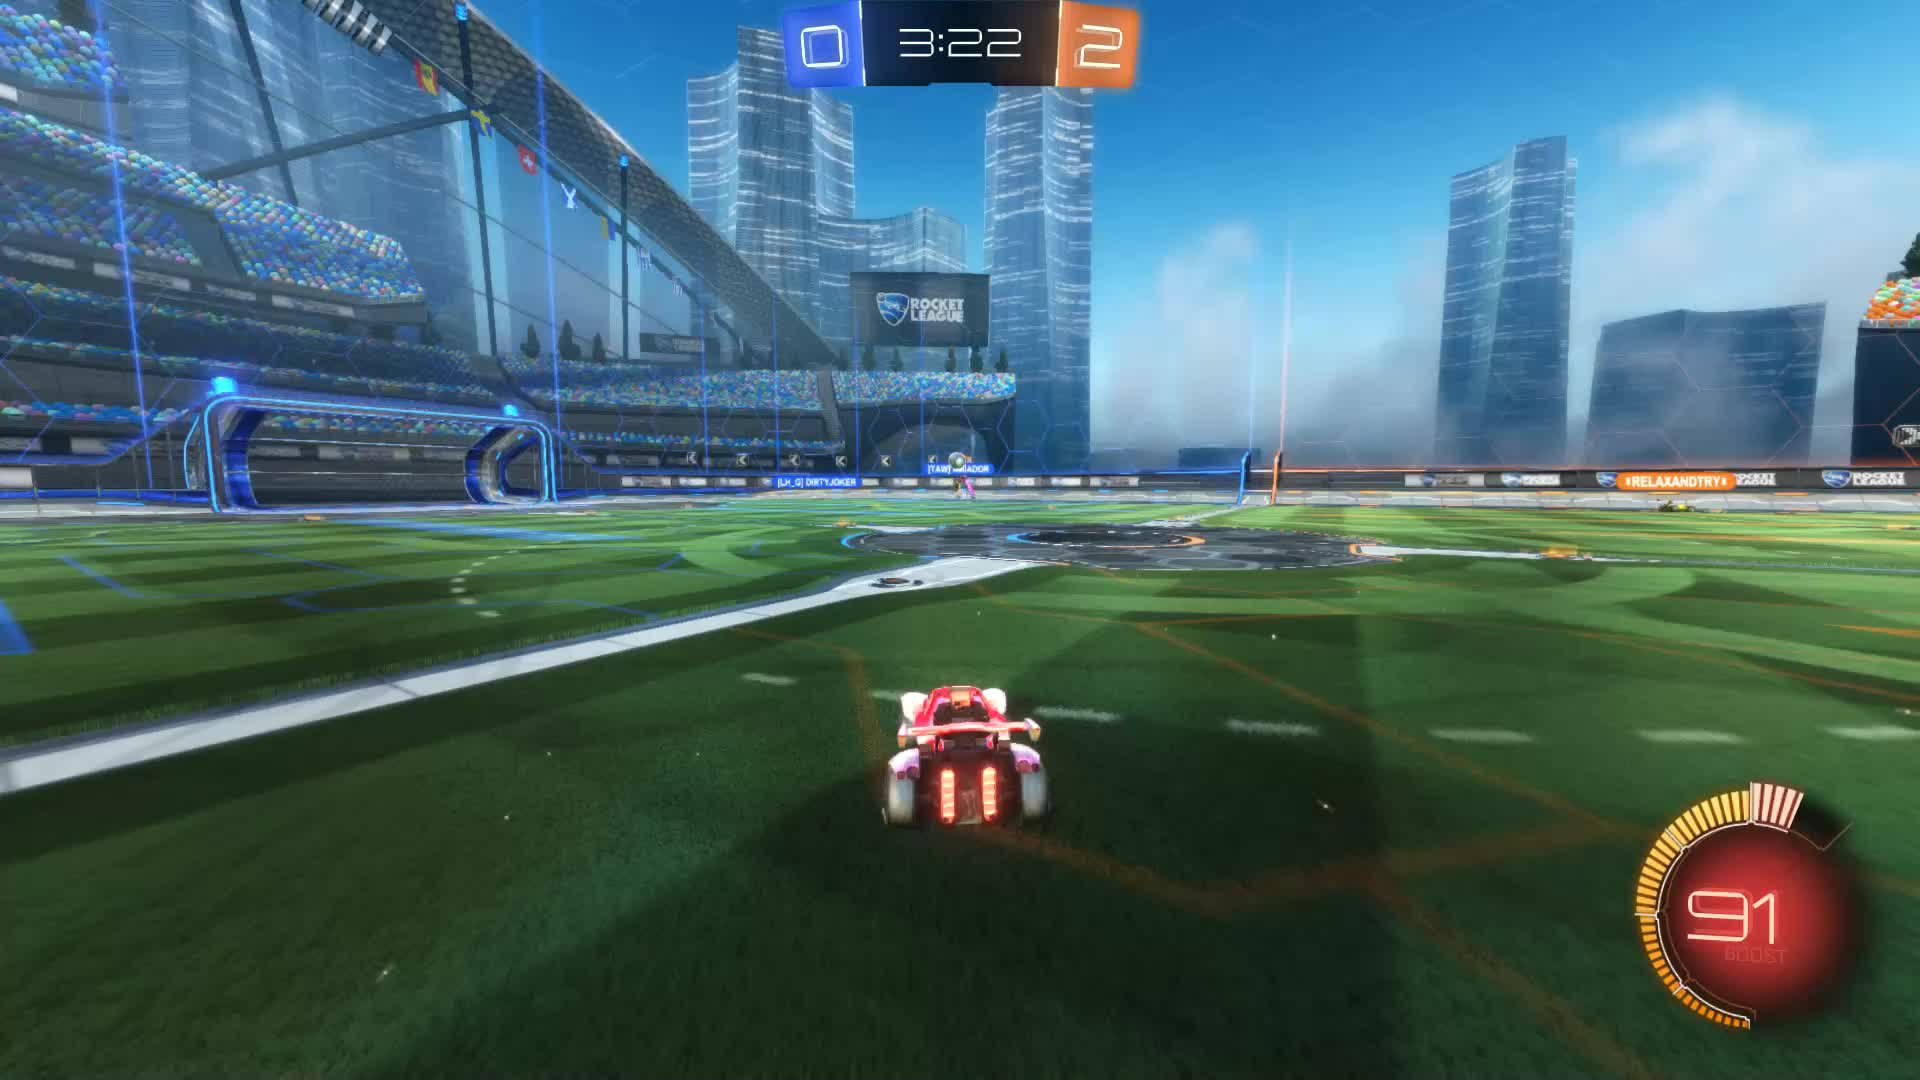 Gif Your Game, GifYourGame, Rocket League, RocketLeague, SCOTLAND FOREVER, Goal 3: SCOTLAND FOREVER GIFs